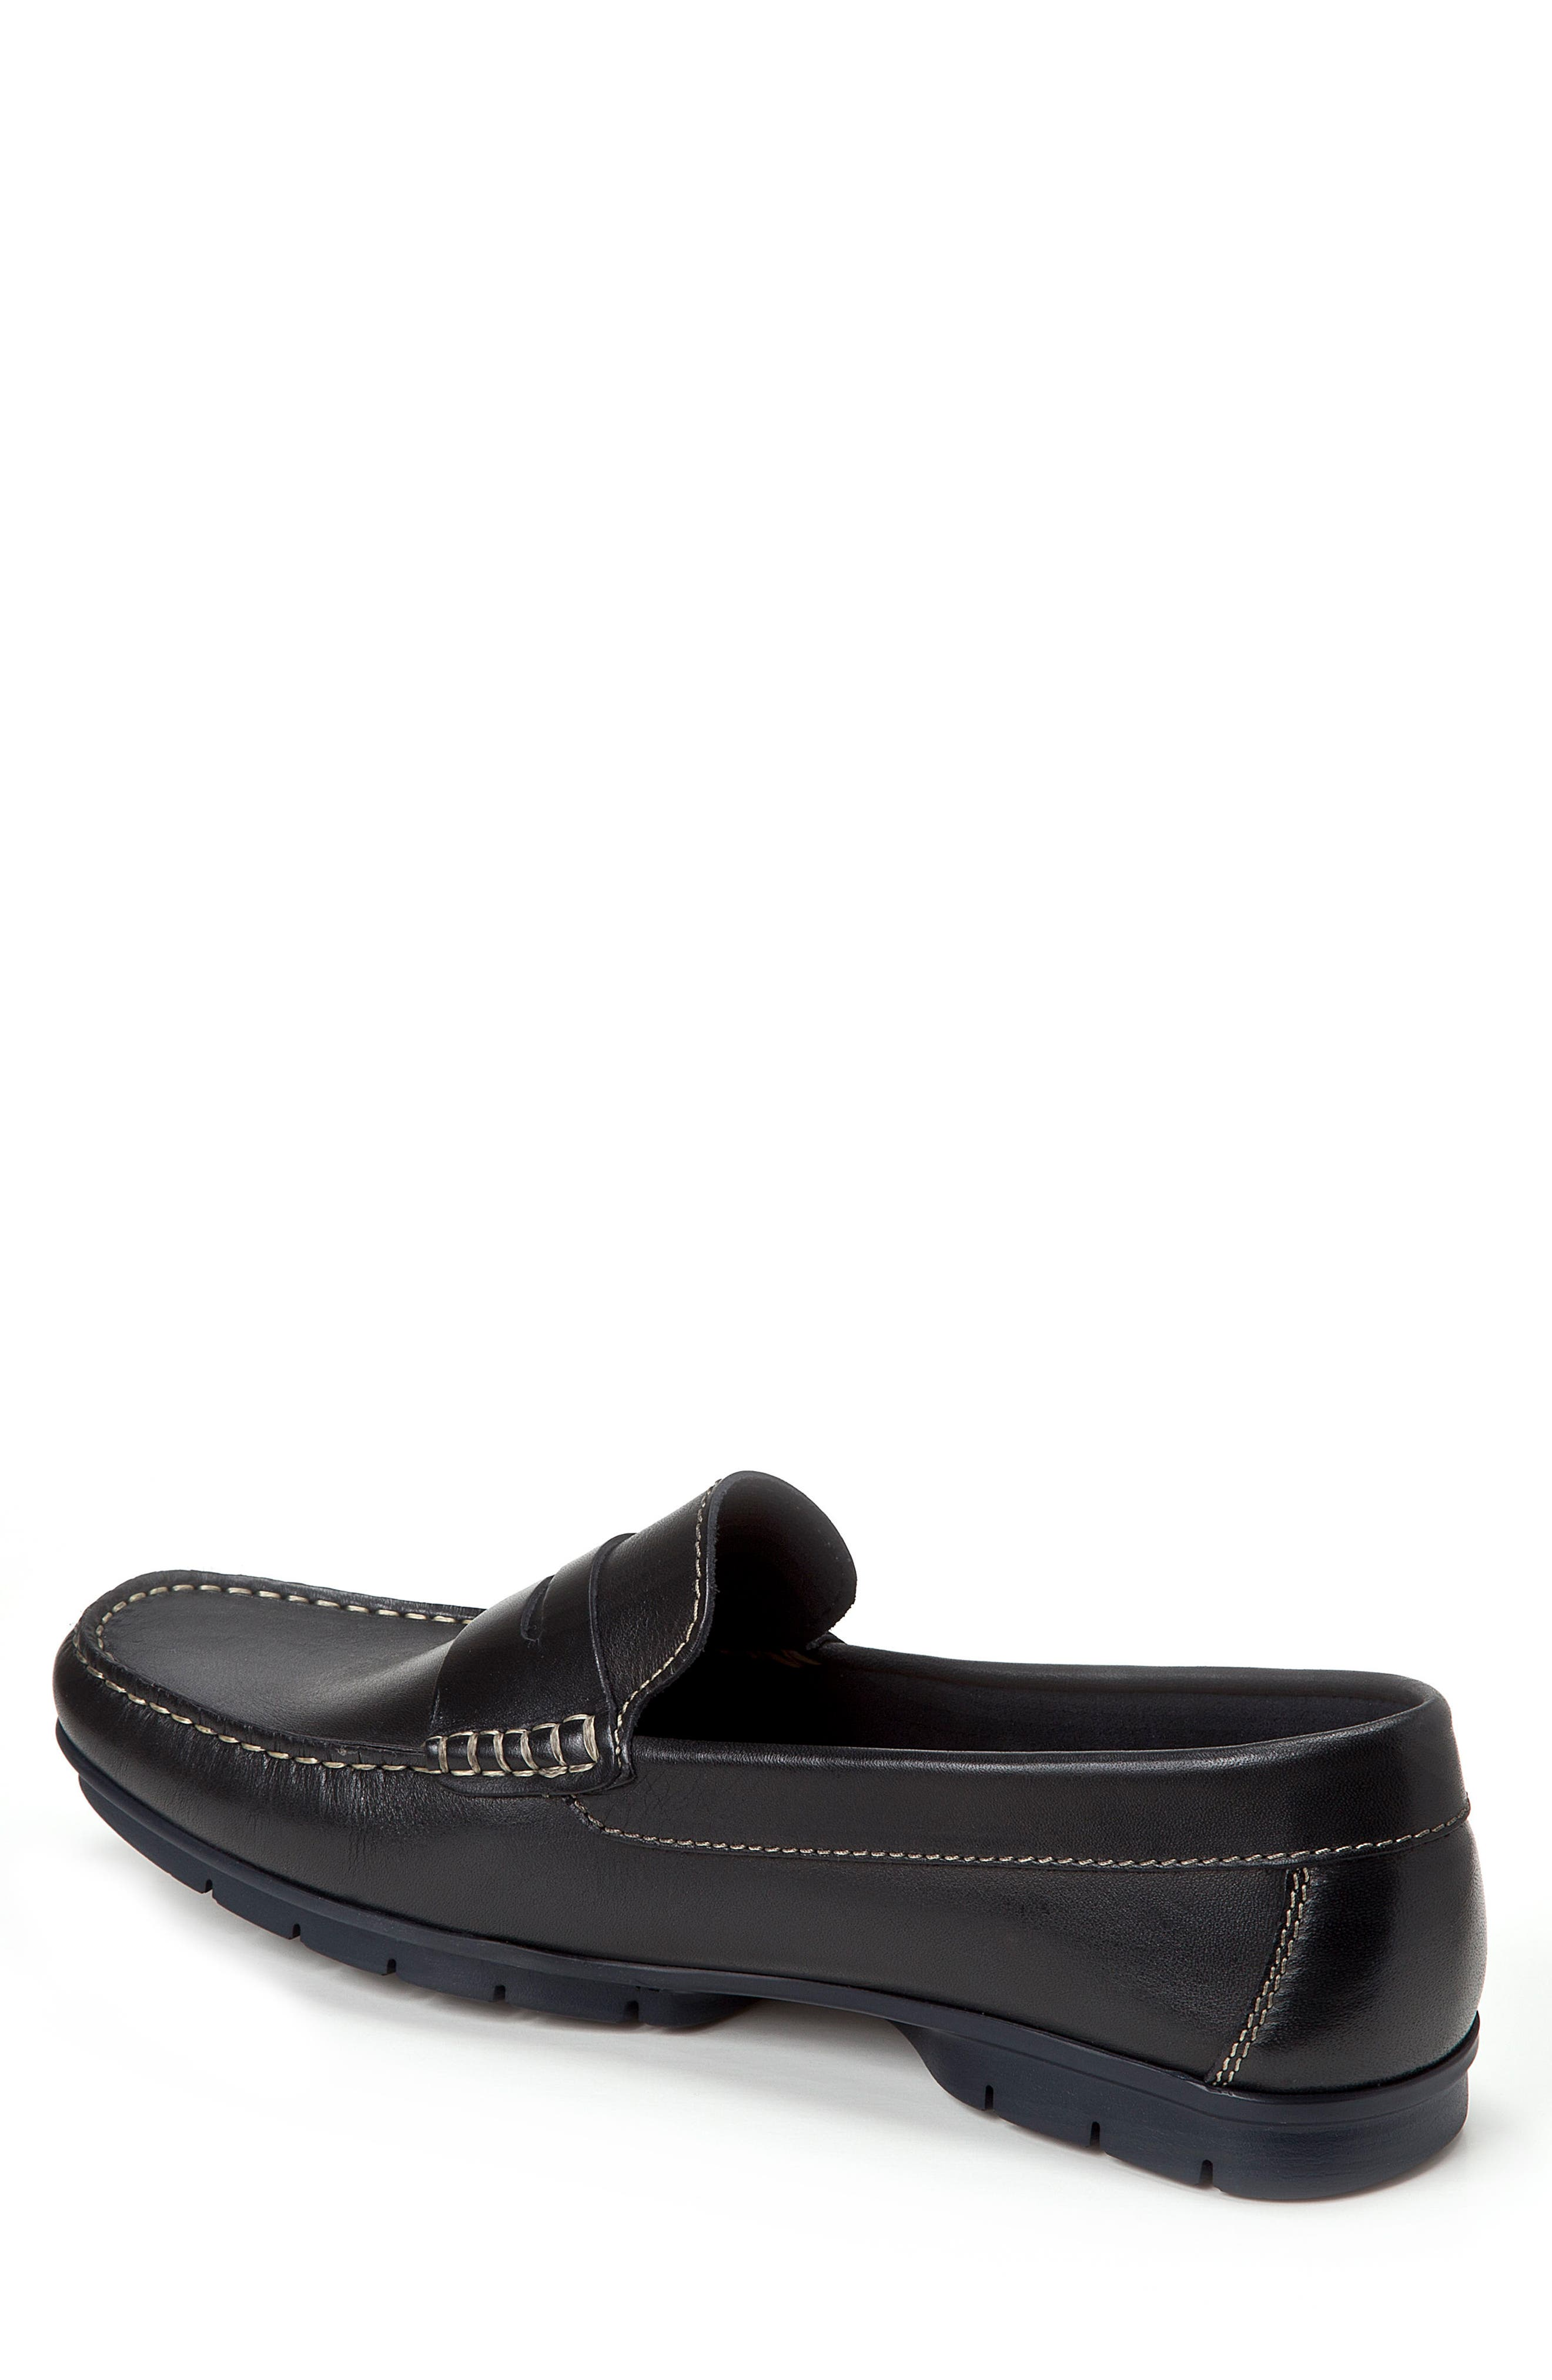 Paco Penny Loafer,                             Alternate thumbnail 2, color,                             BLACK LEATHER